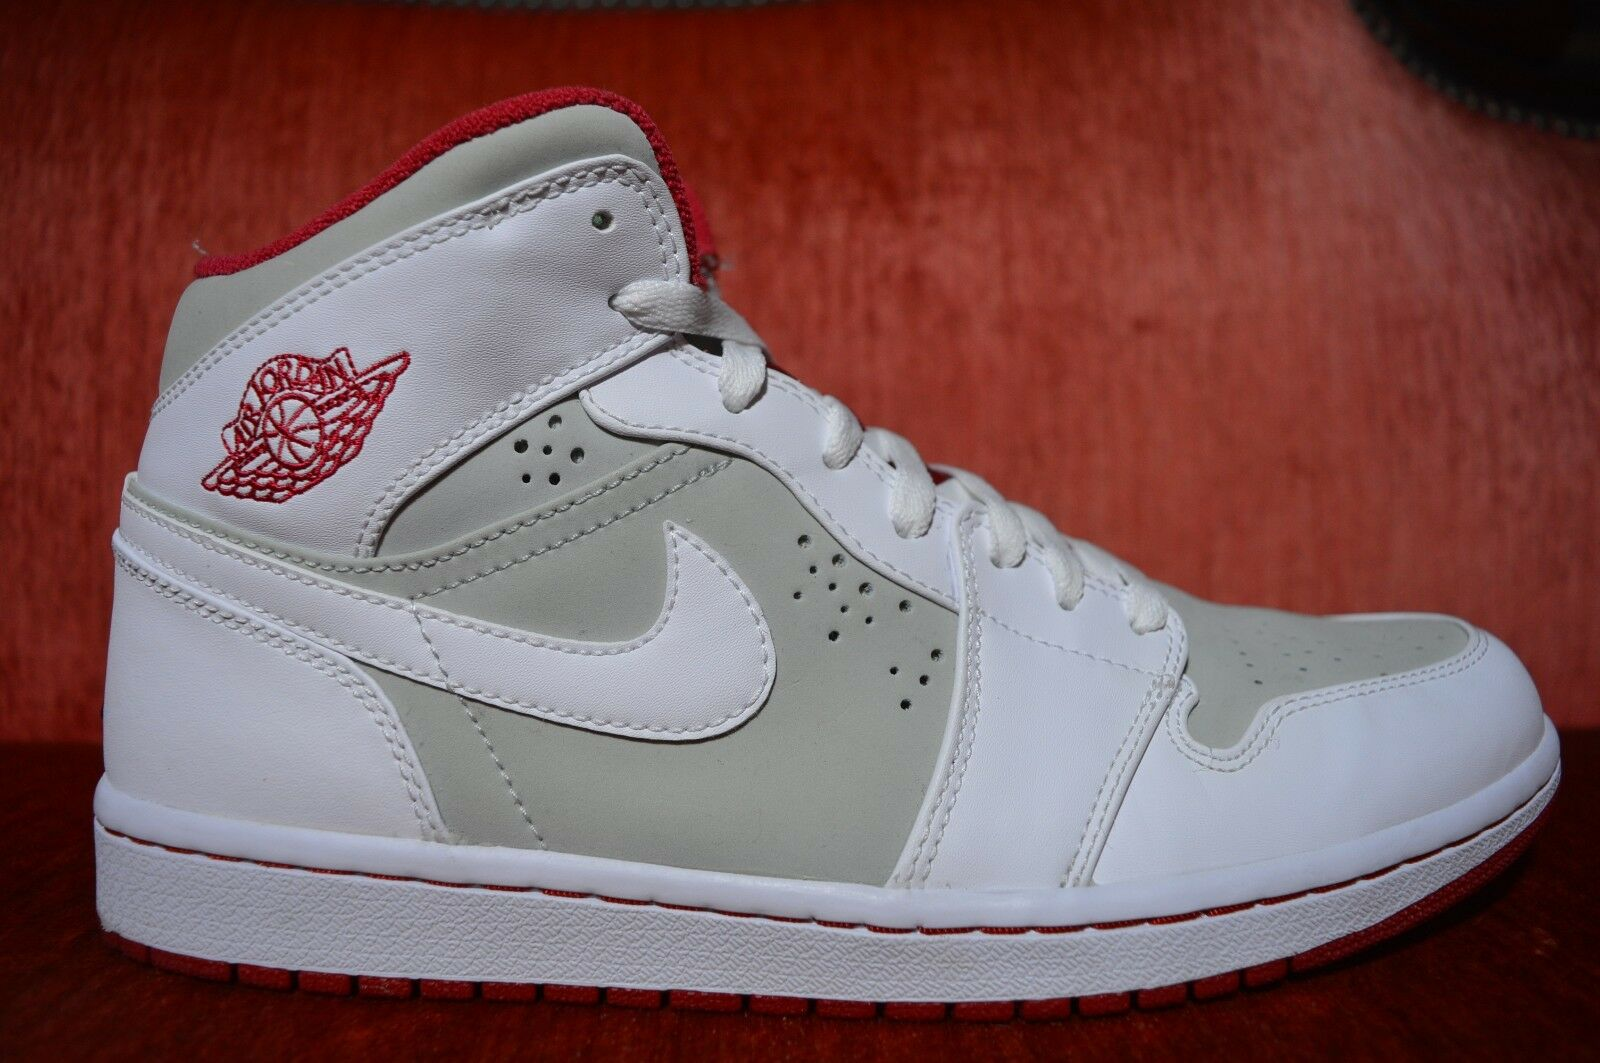 WORN ONCE Nike Air Jordan 1 Hare 2018 Bugs Bunny Comfortable The most popular shoes for men and women